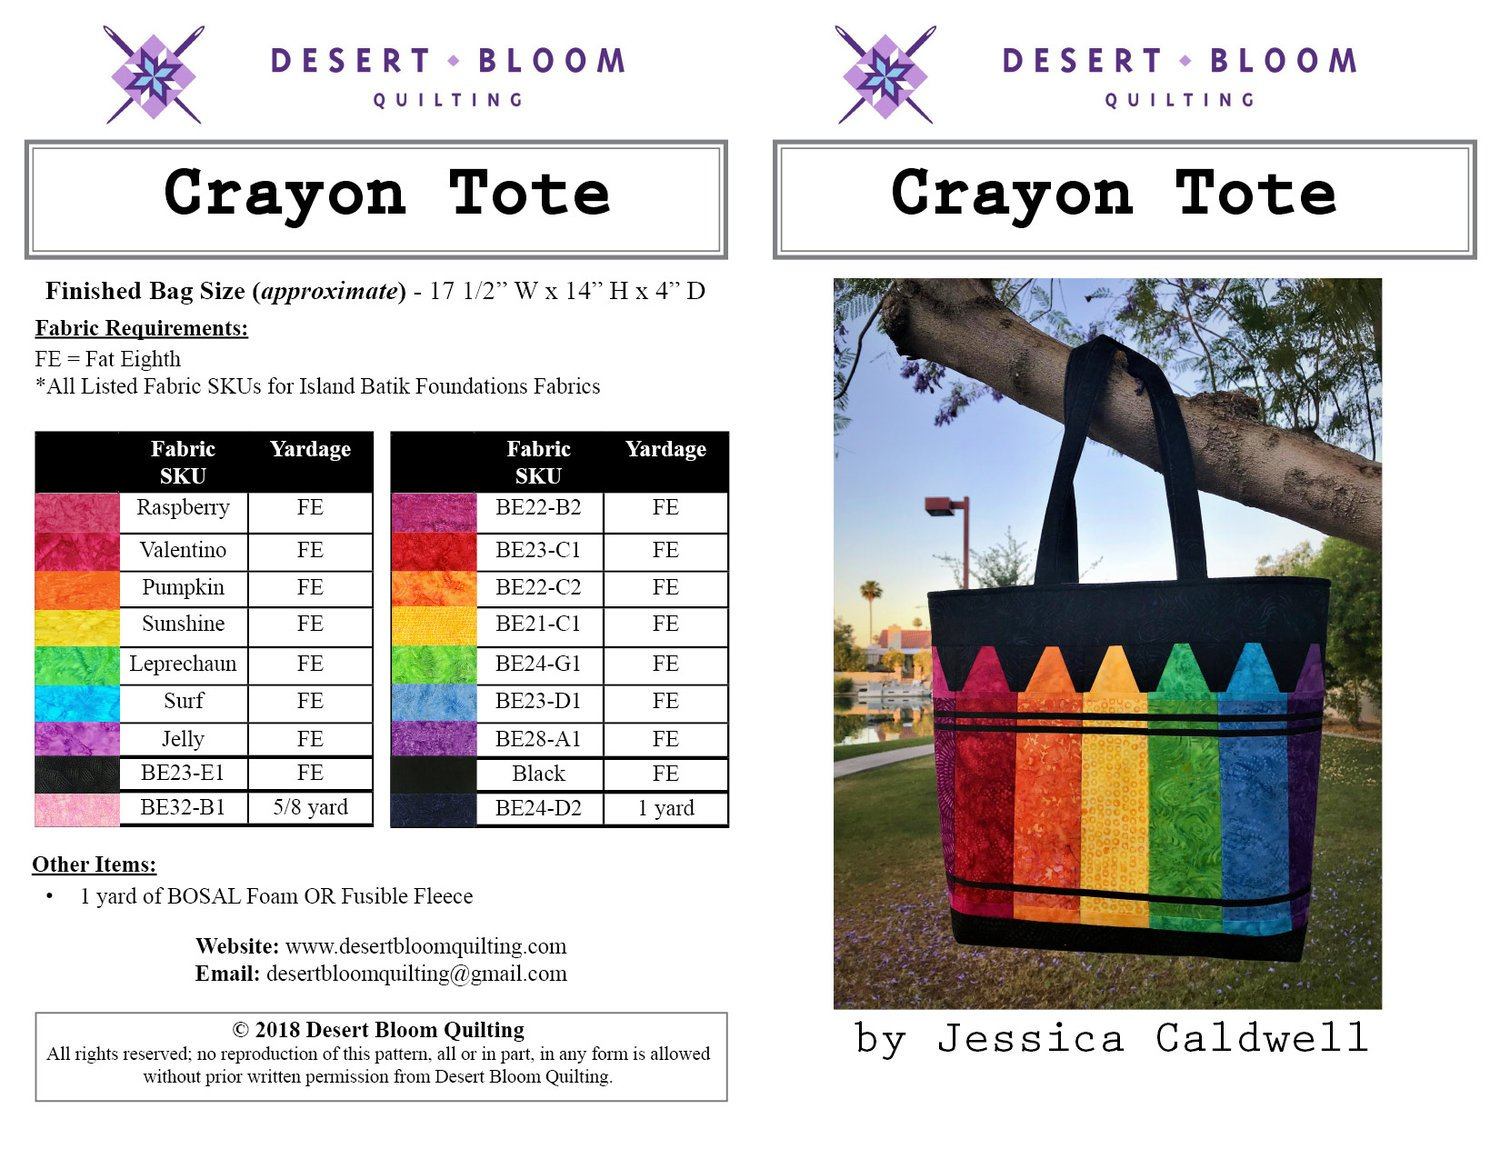 Crayon Tote by Desert Bloom Quilting